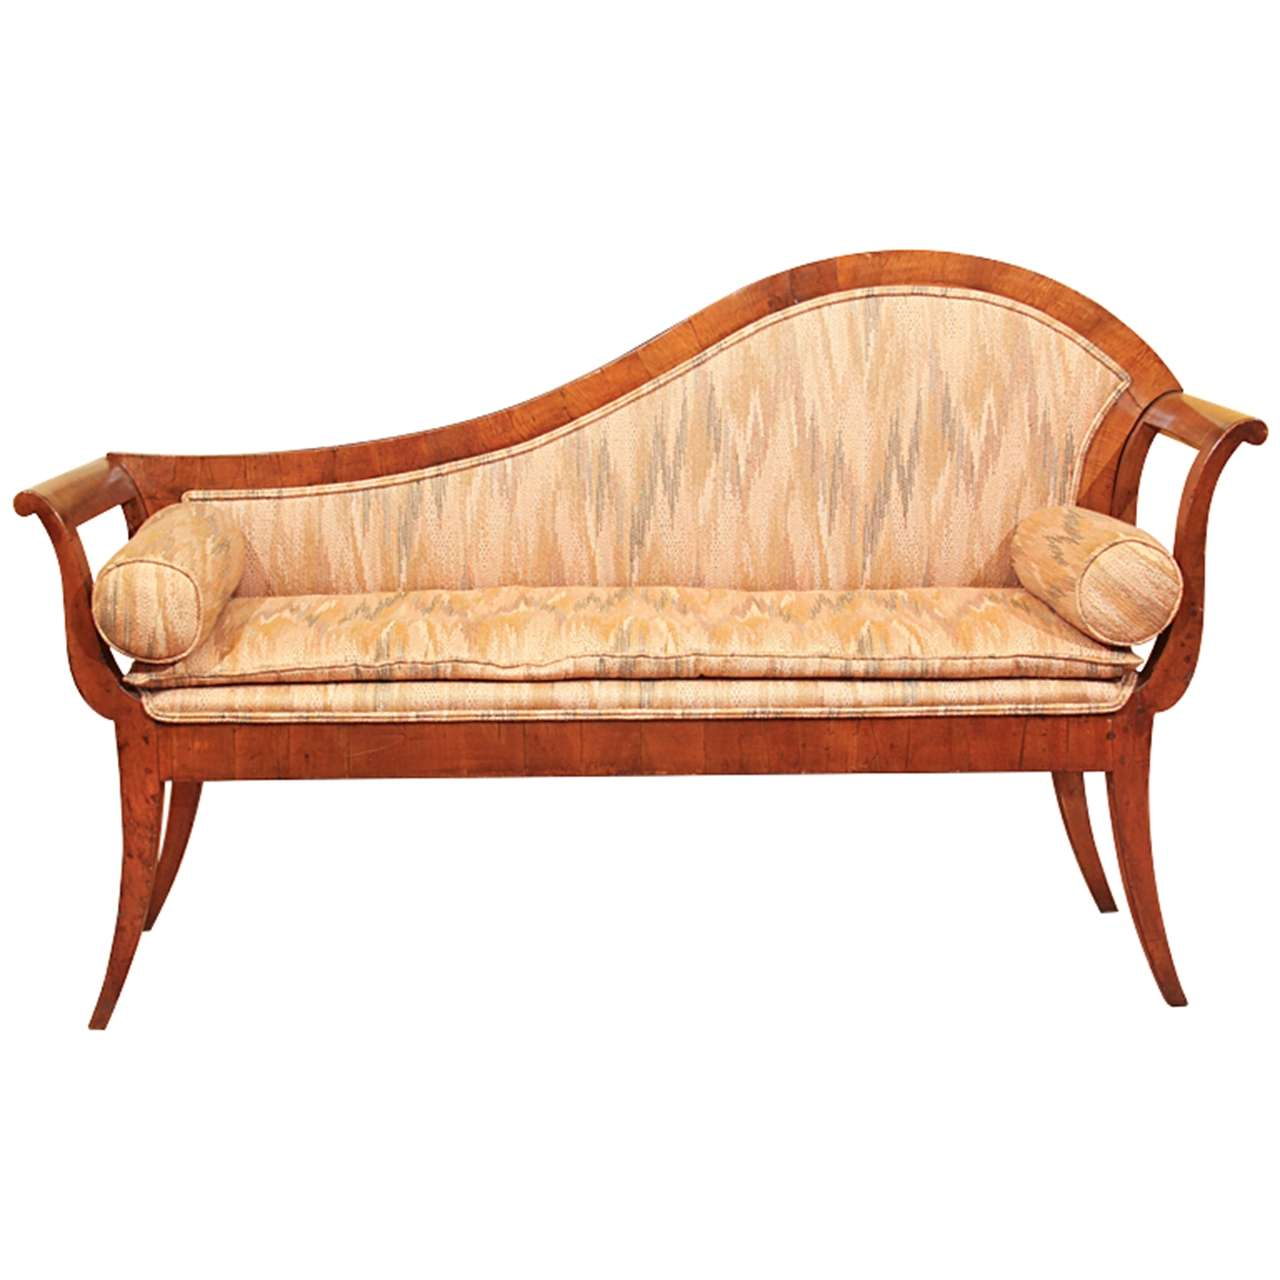 Biedermeier walnut recamier or chaise longue at 1stdibs for Chaise longue furniture